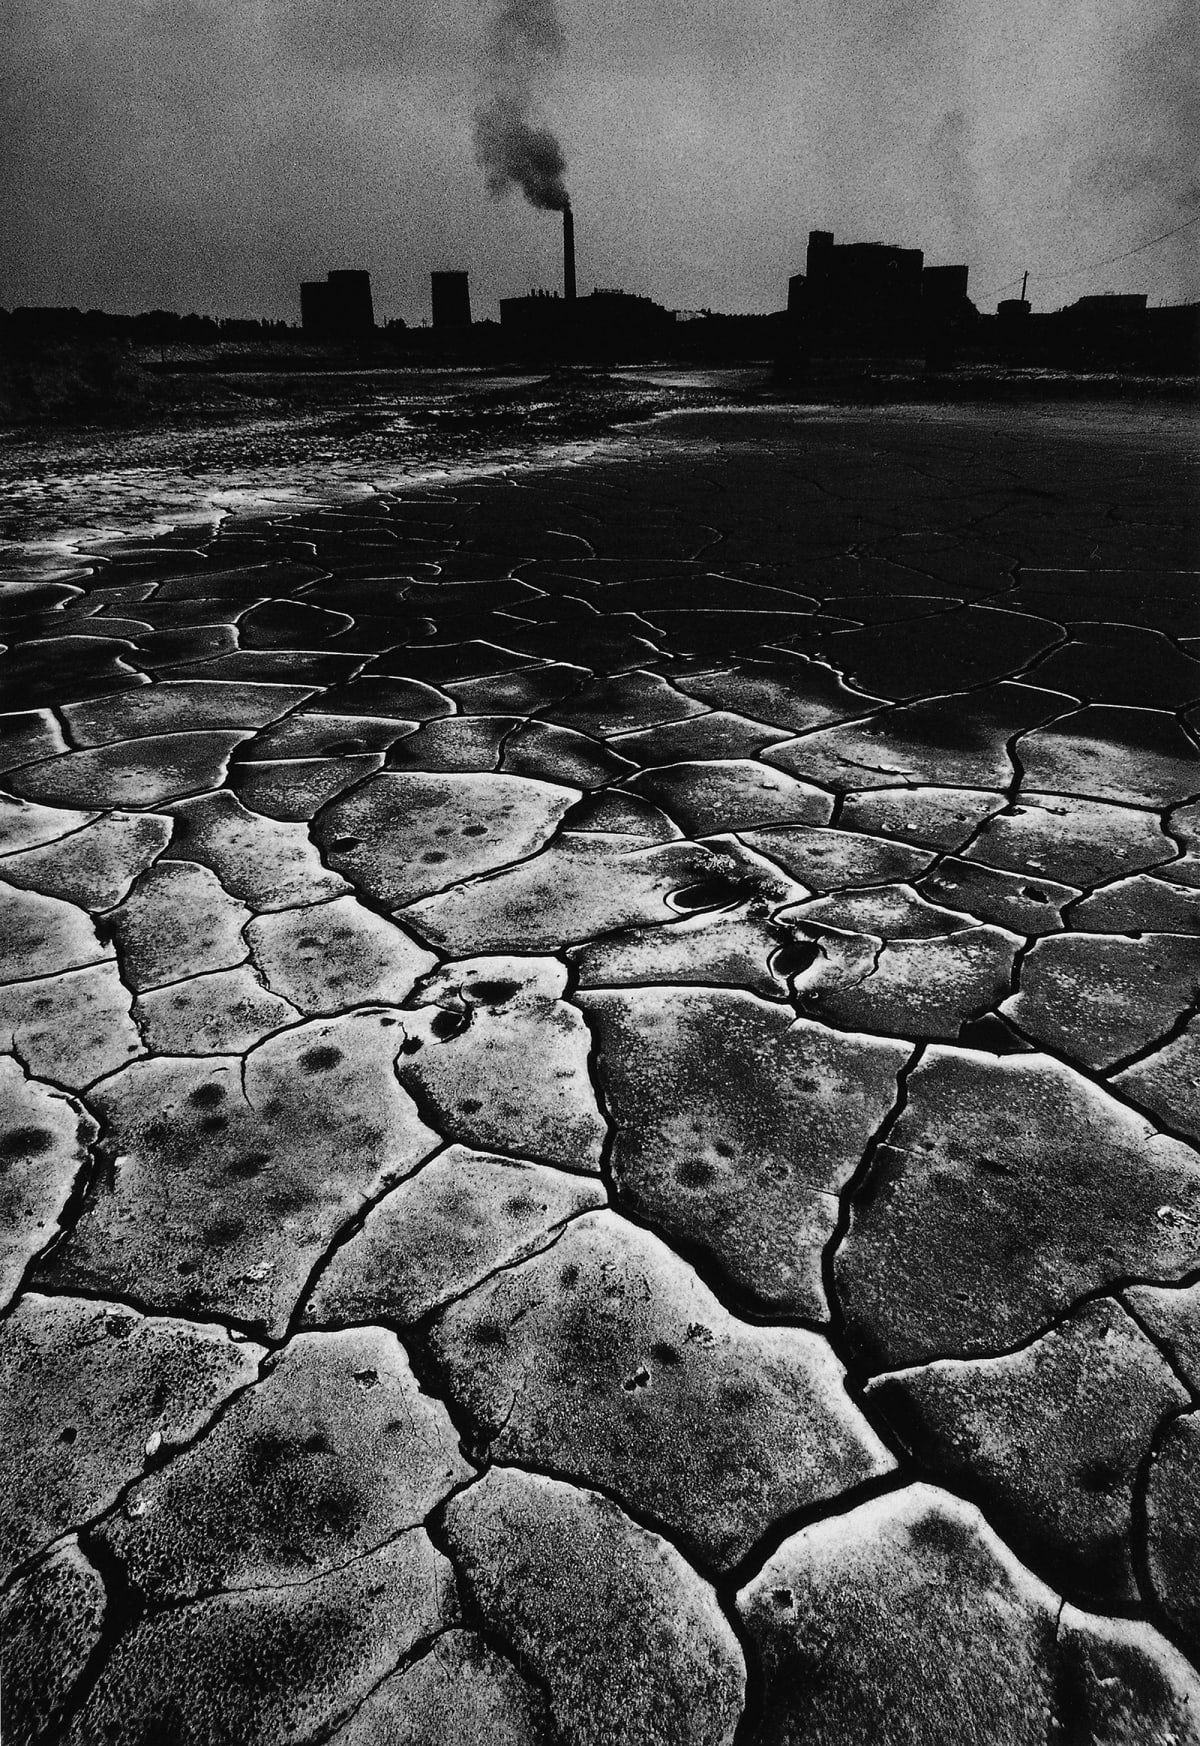 Michal Cala, The Landscape around the Marcel Mine, Radlin, 1978